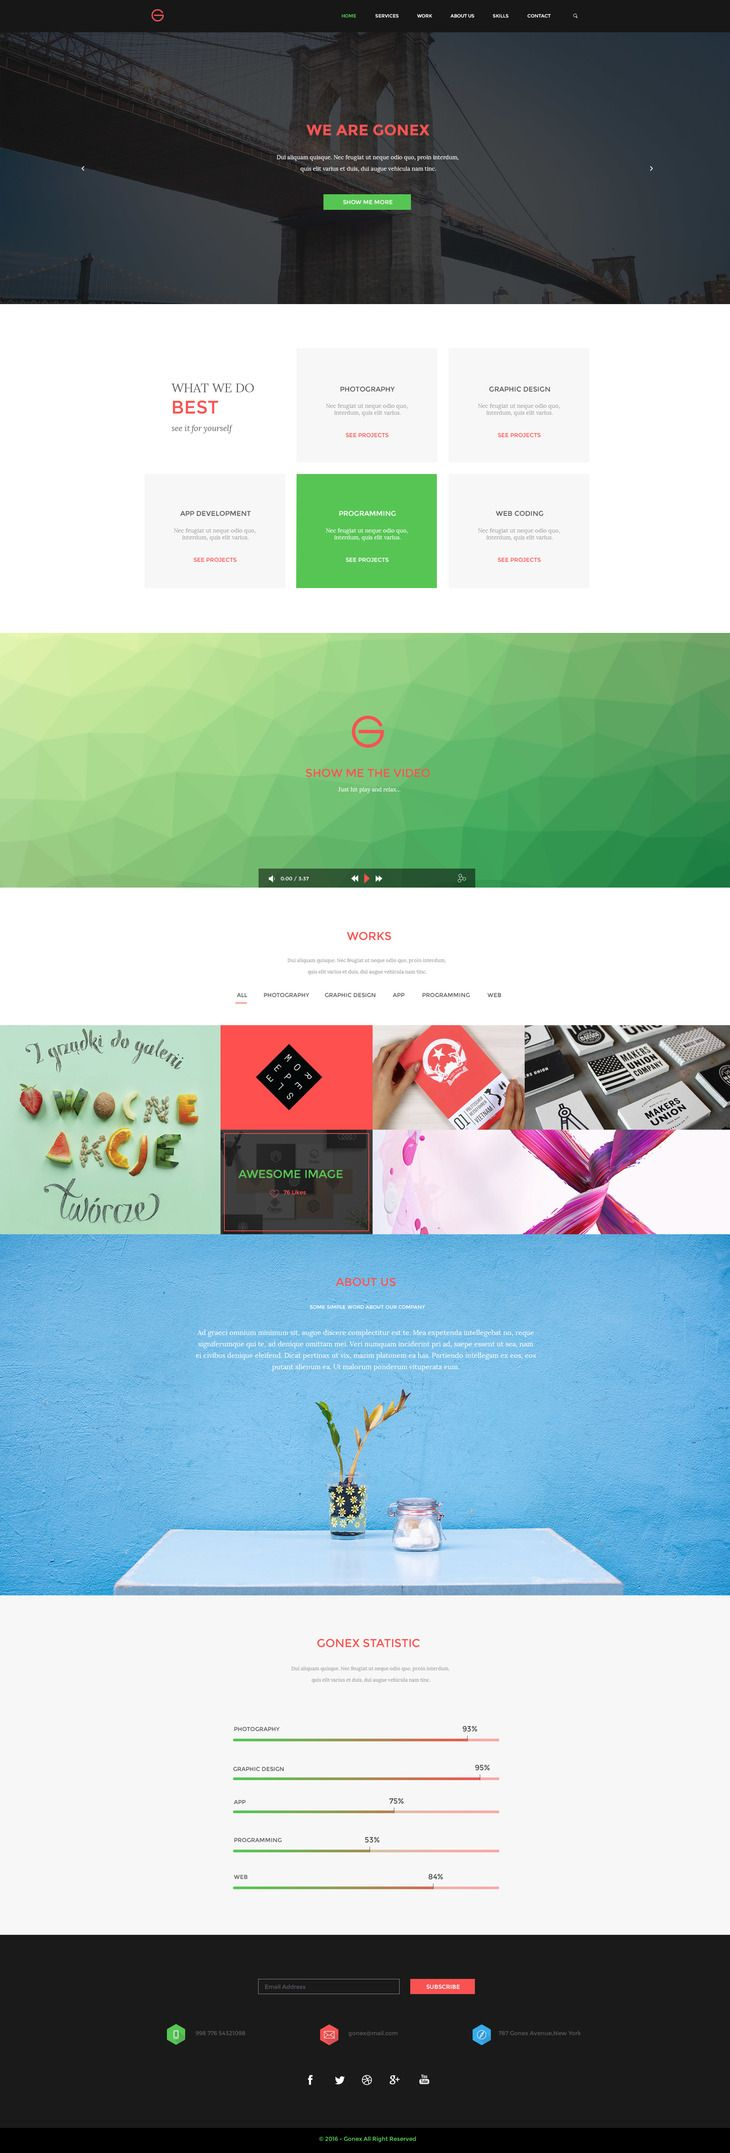 Gonex - It's a one page psd template,great for small agency or studio. It is featured by a modern and professional look with minimalistic style.PSD file is layered and grouped.